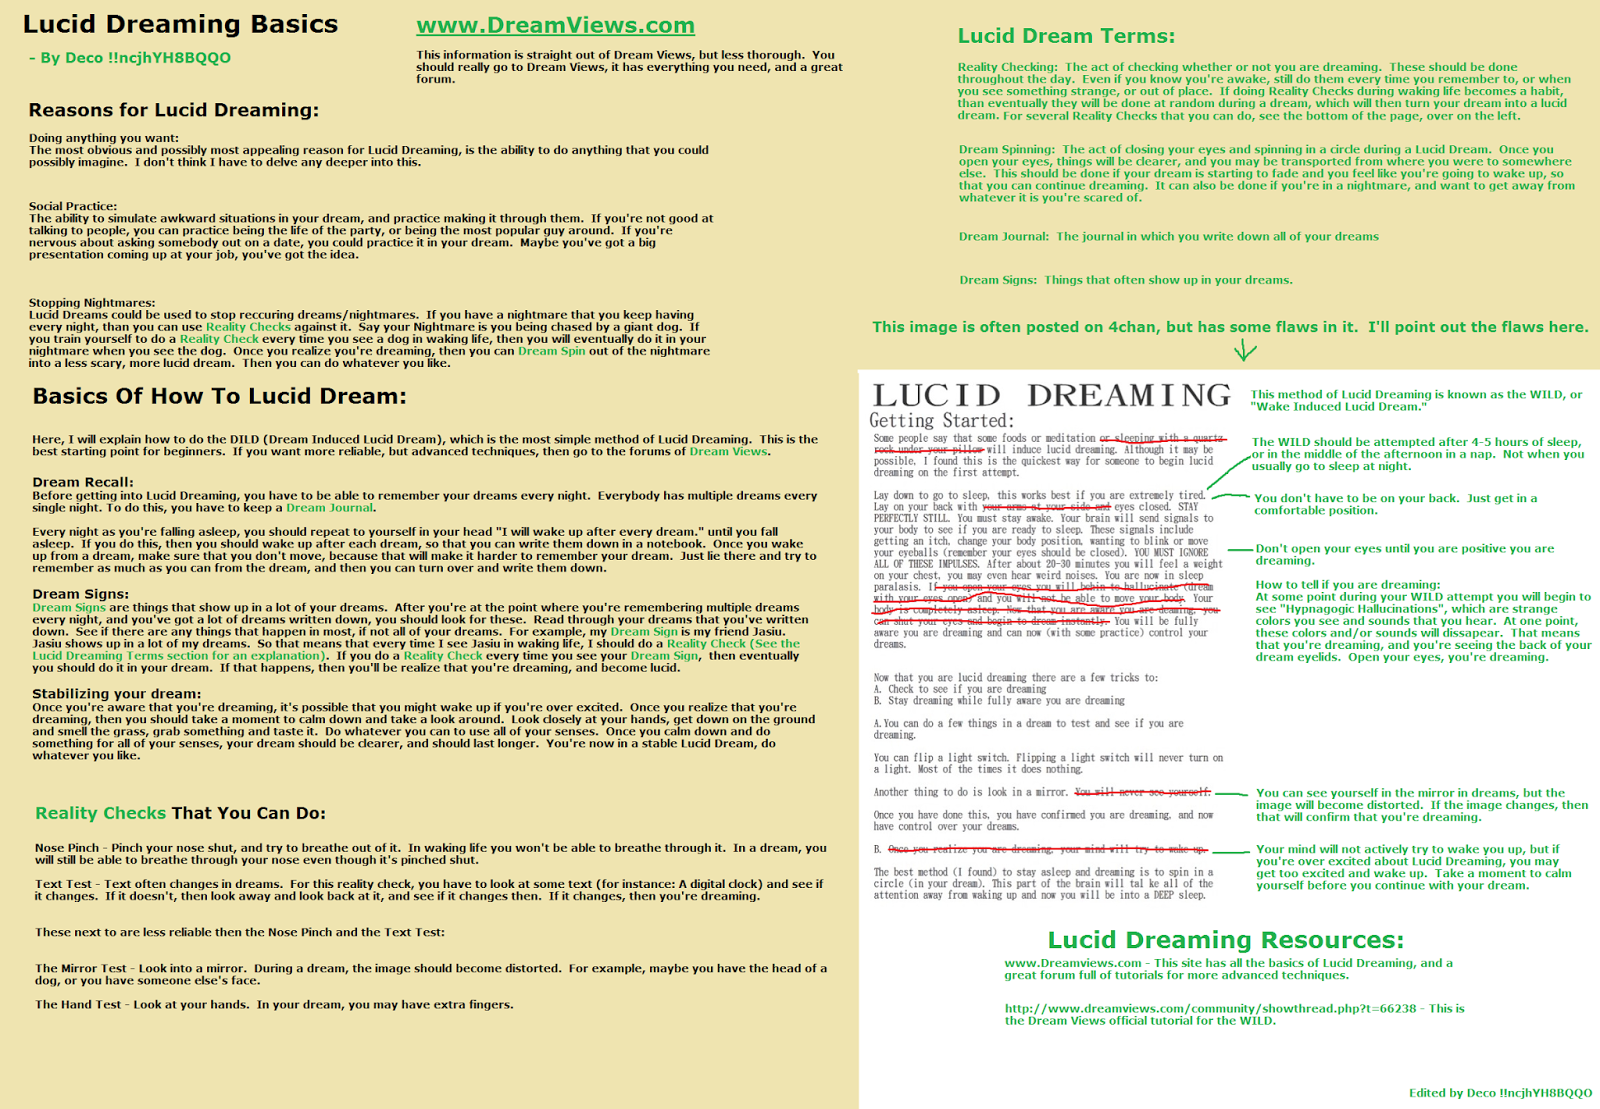 Lucid dreaming | < madInfoGraph >